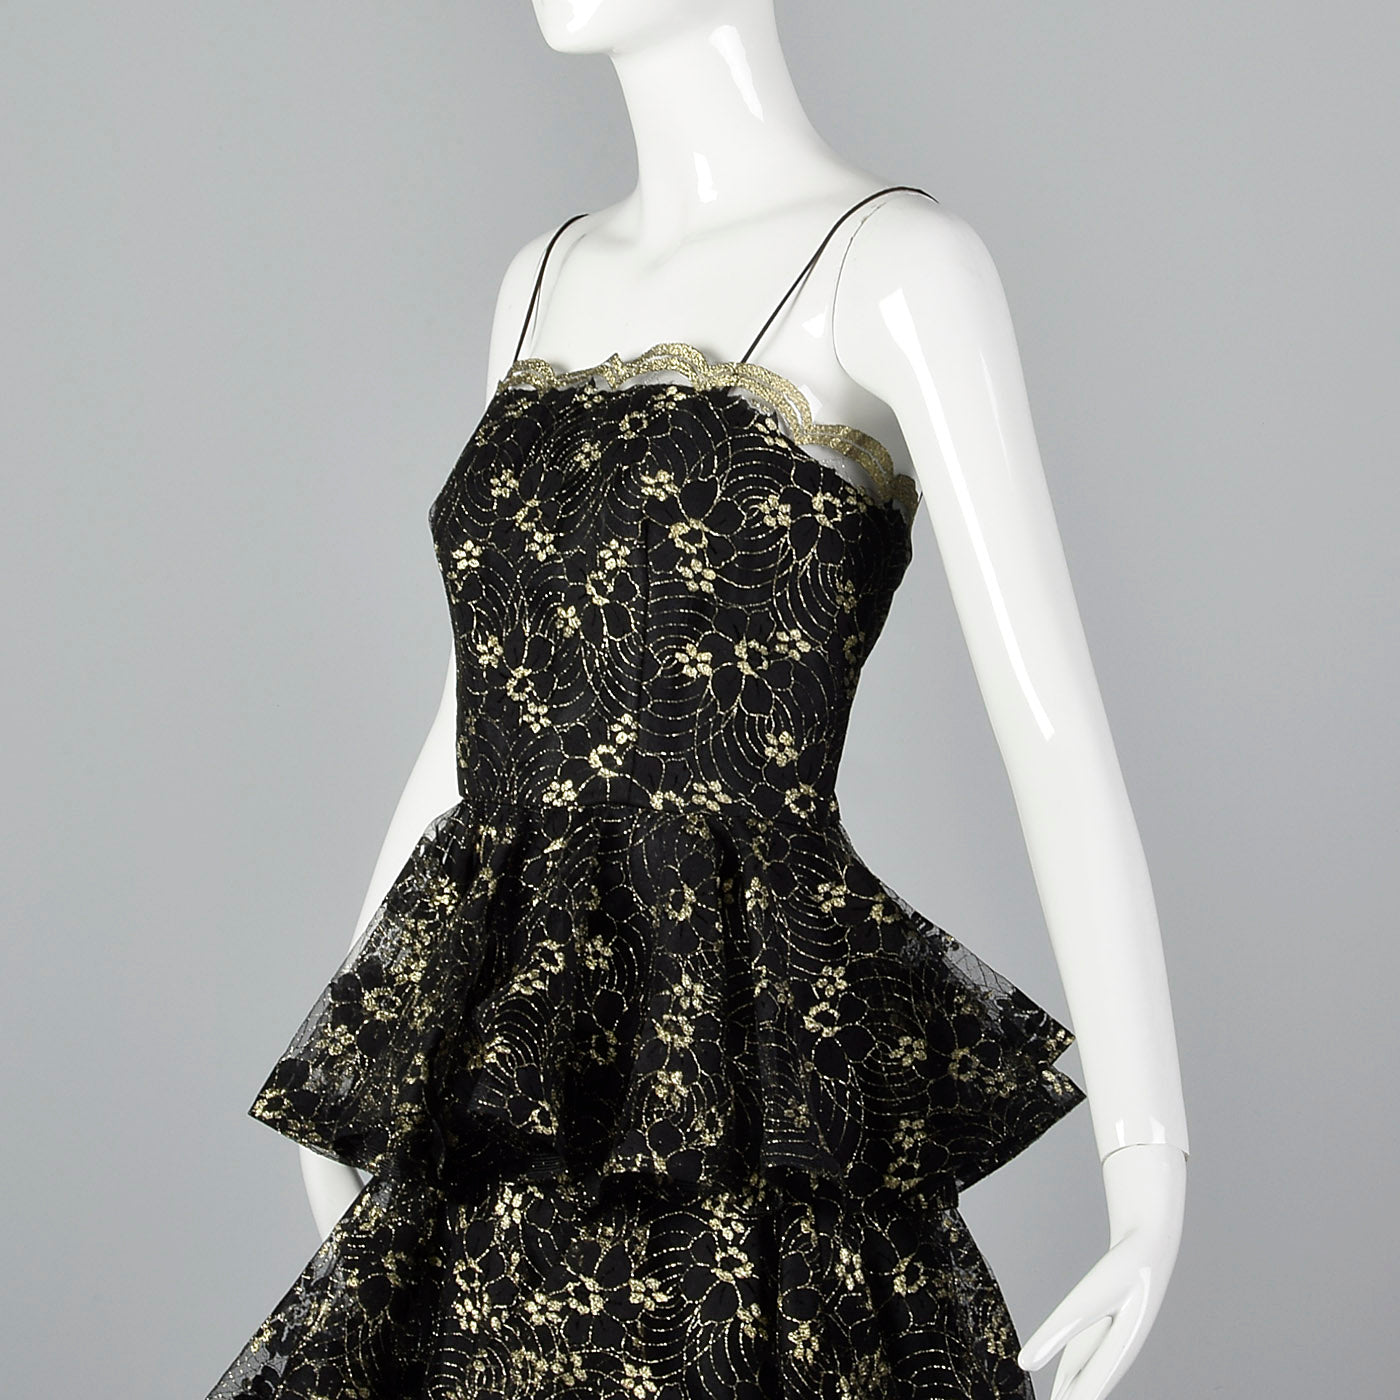 1980s Lillie Rubin Black & Gold Lace Dress with Layered Skirt